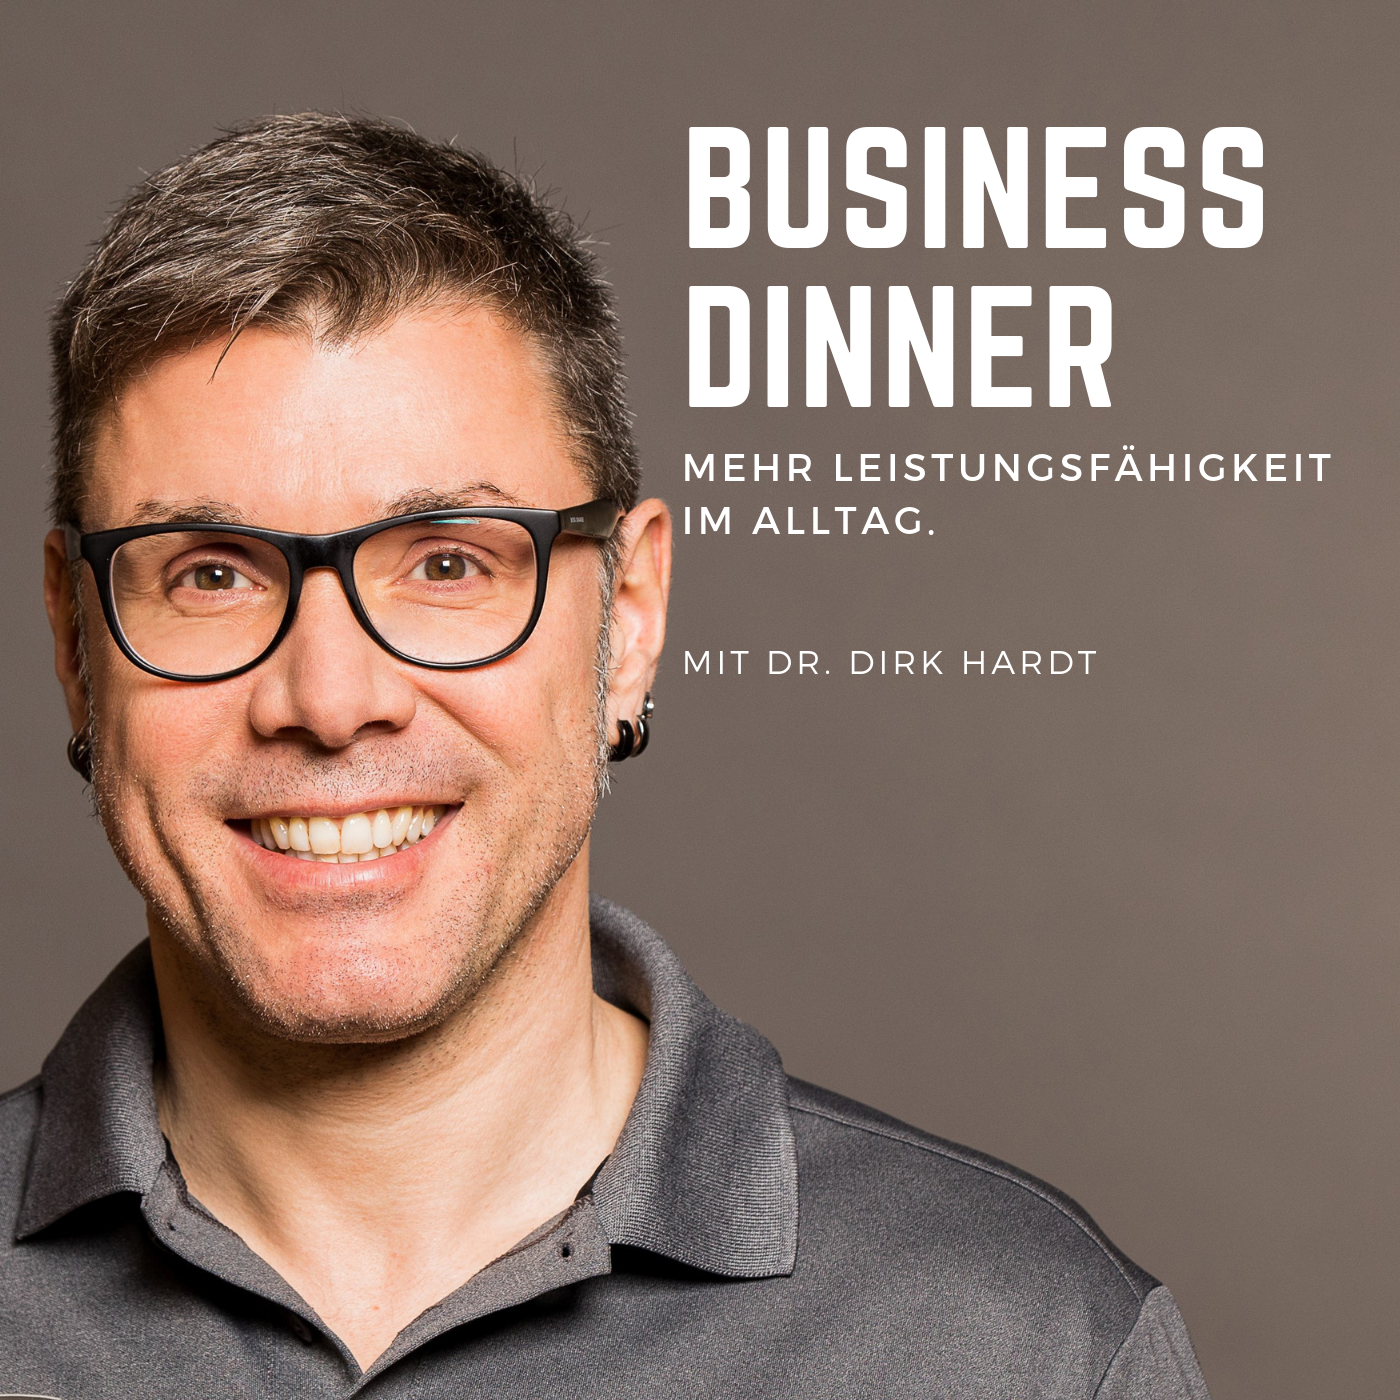 Dr. Dirk Hardt - Business Dinner